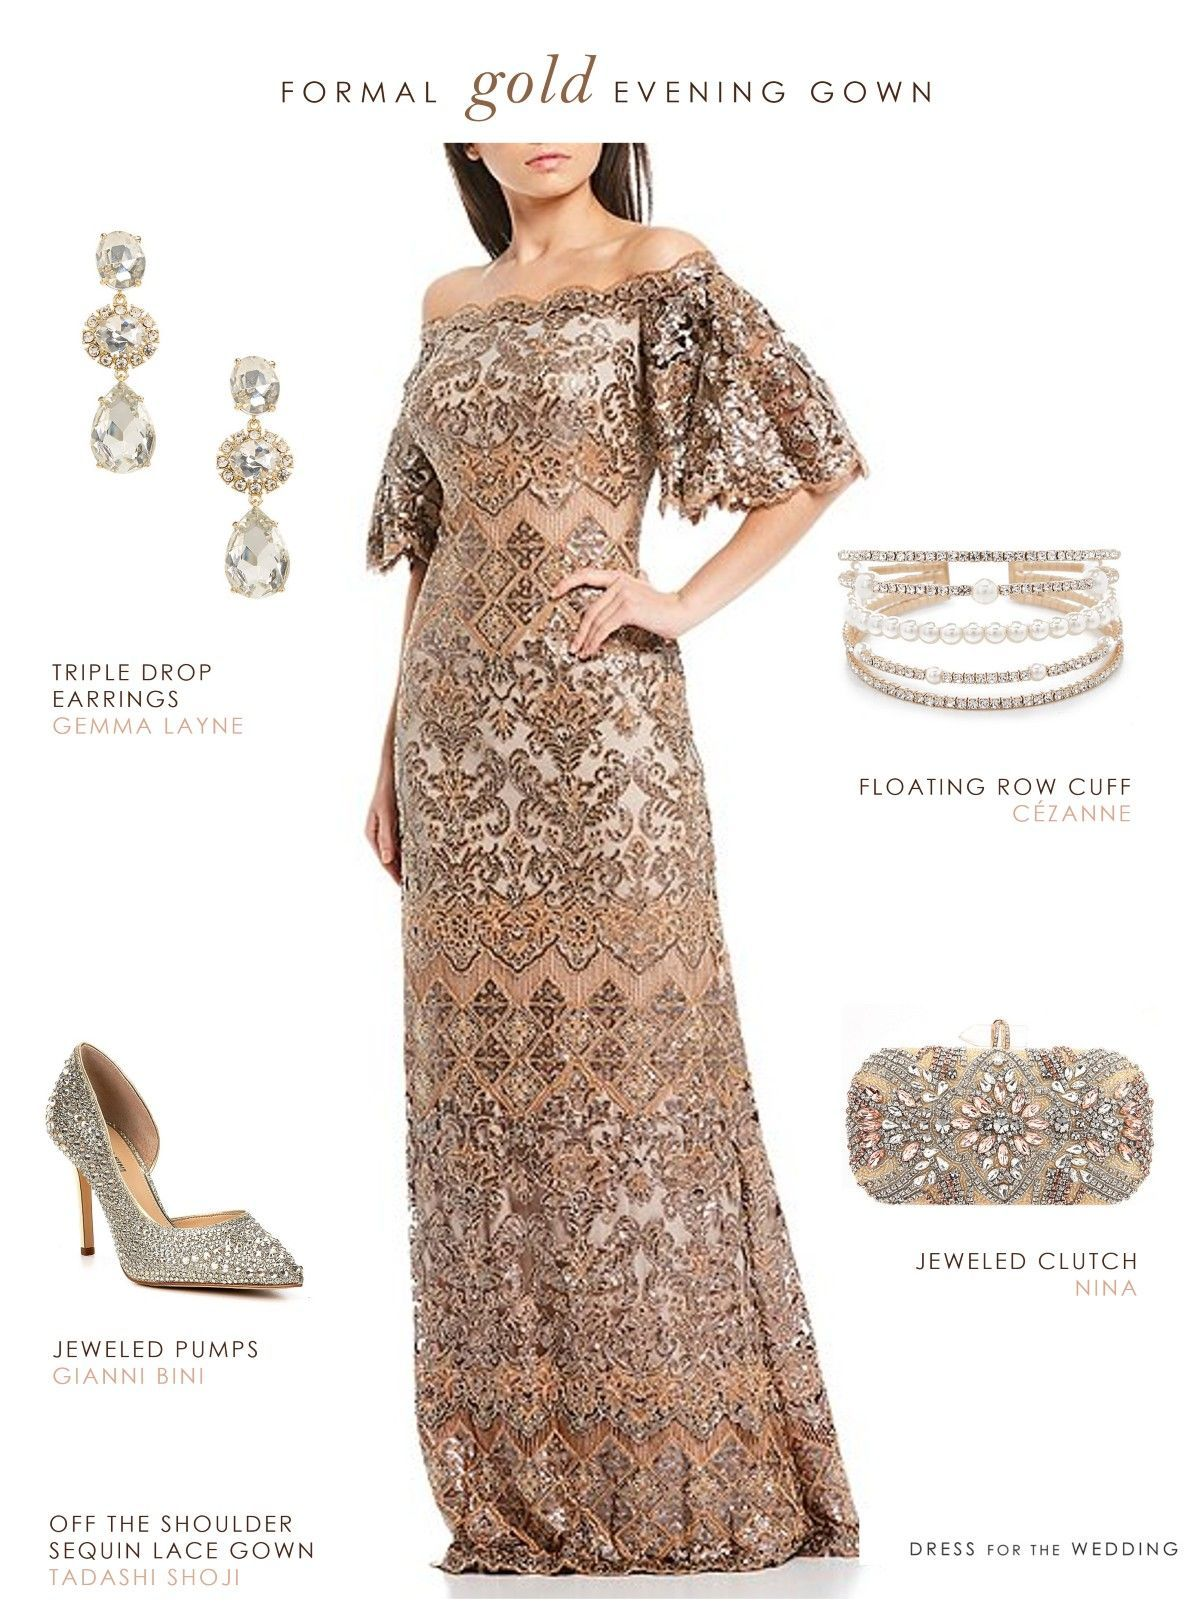 Formal Off The Shoulder Gold Lace Gown Dress For The Wedding Black Tie Wedding Attire Gold Lace Gown Black Tie Wedding Guests [ 1616 x 1200 Pixel ]